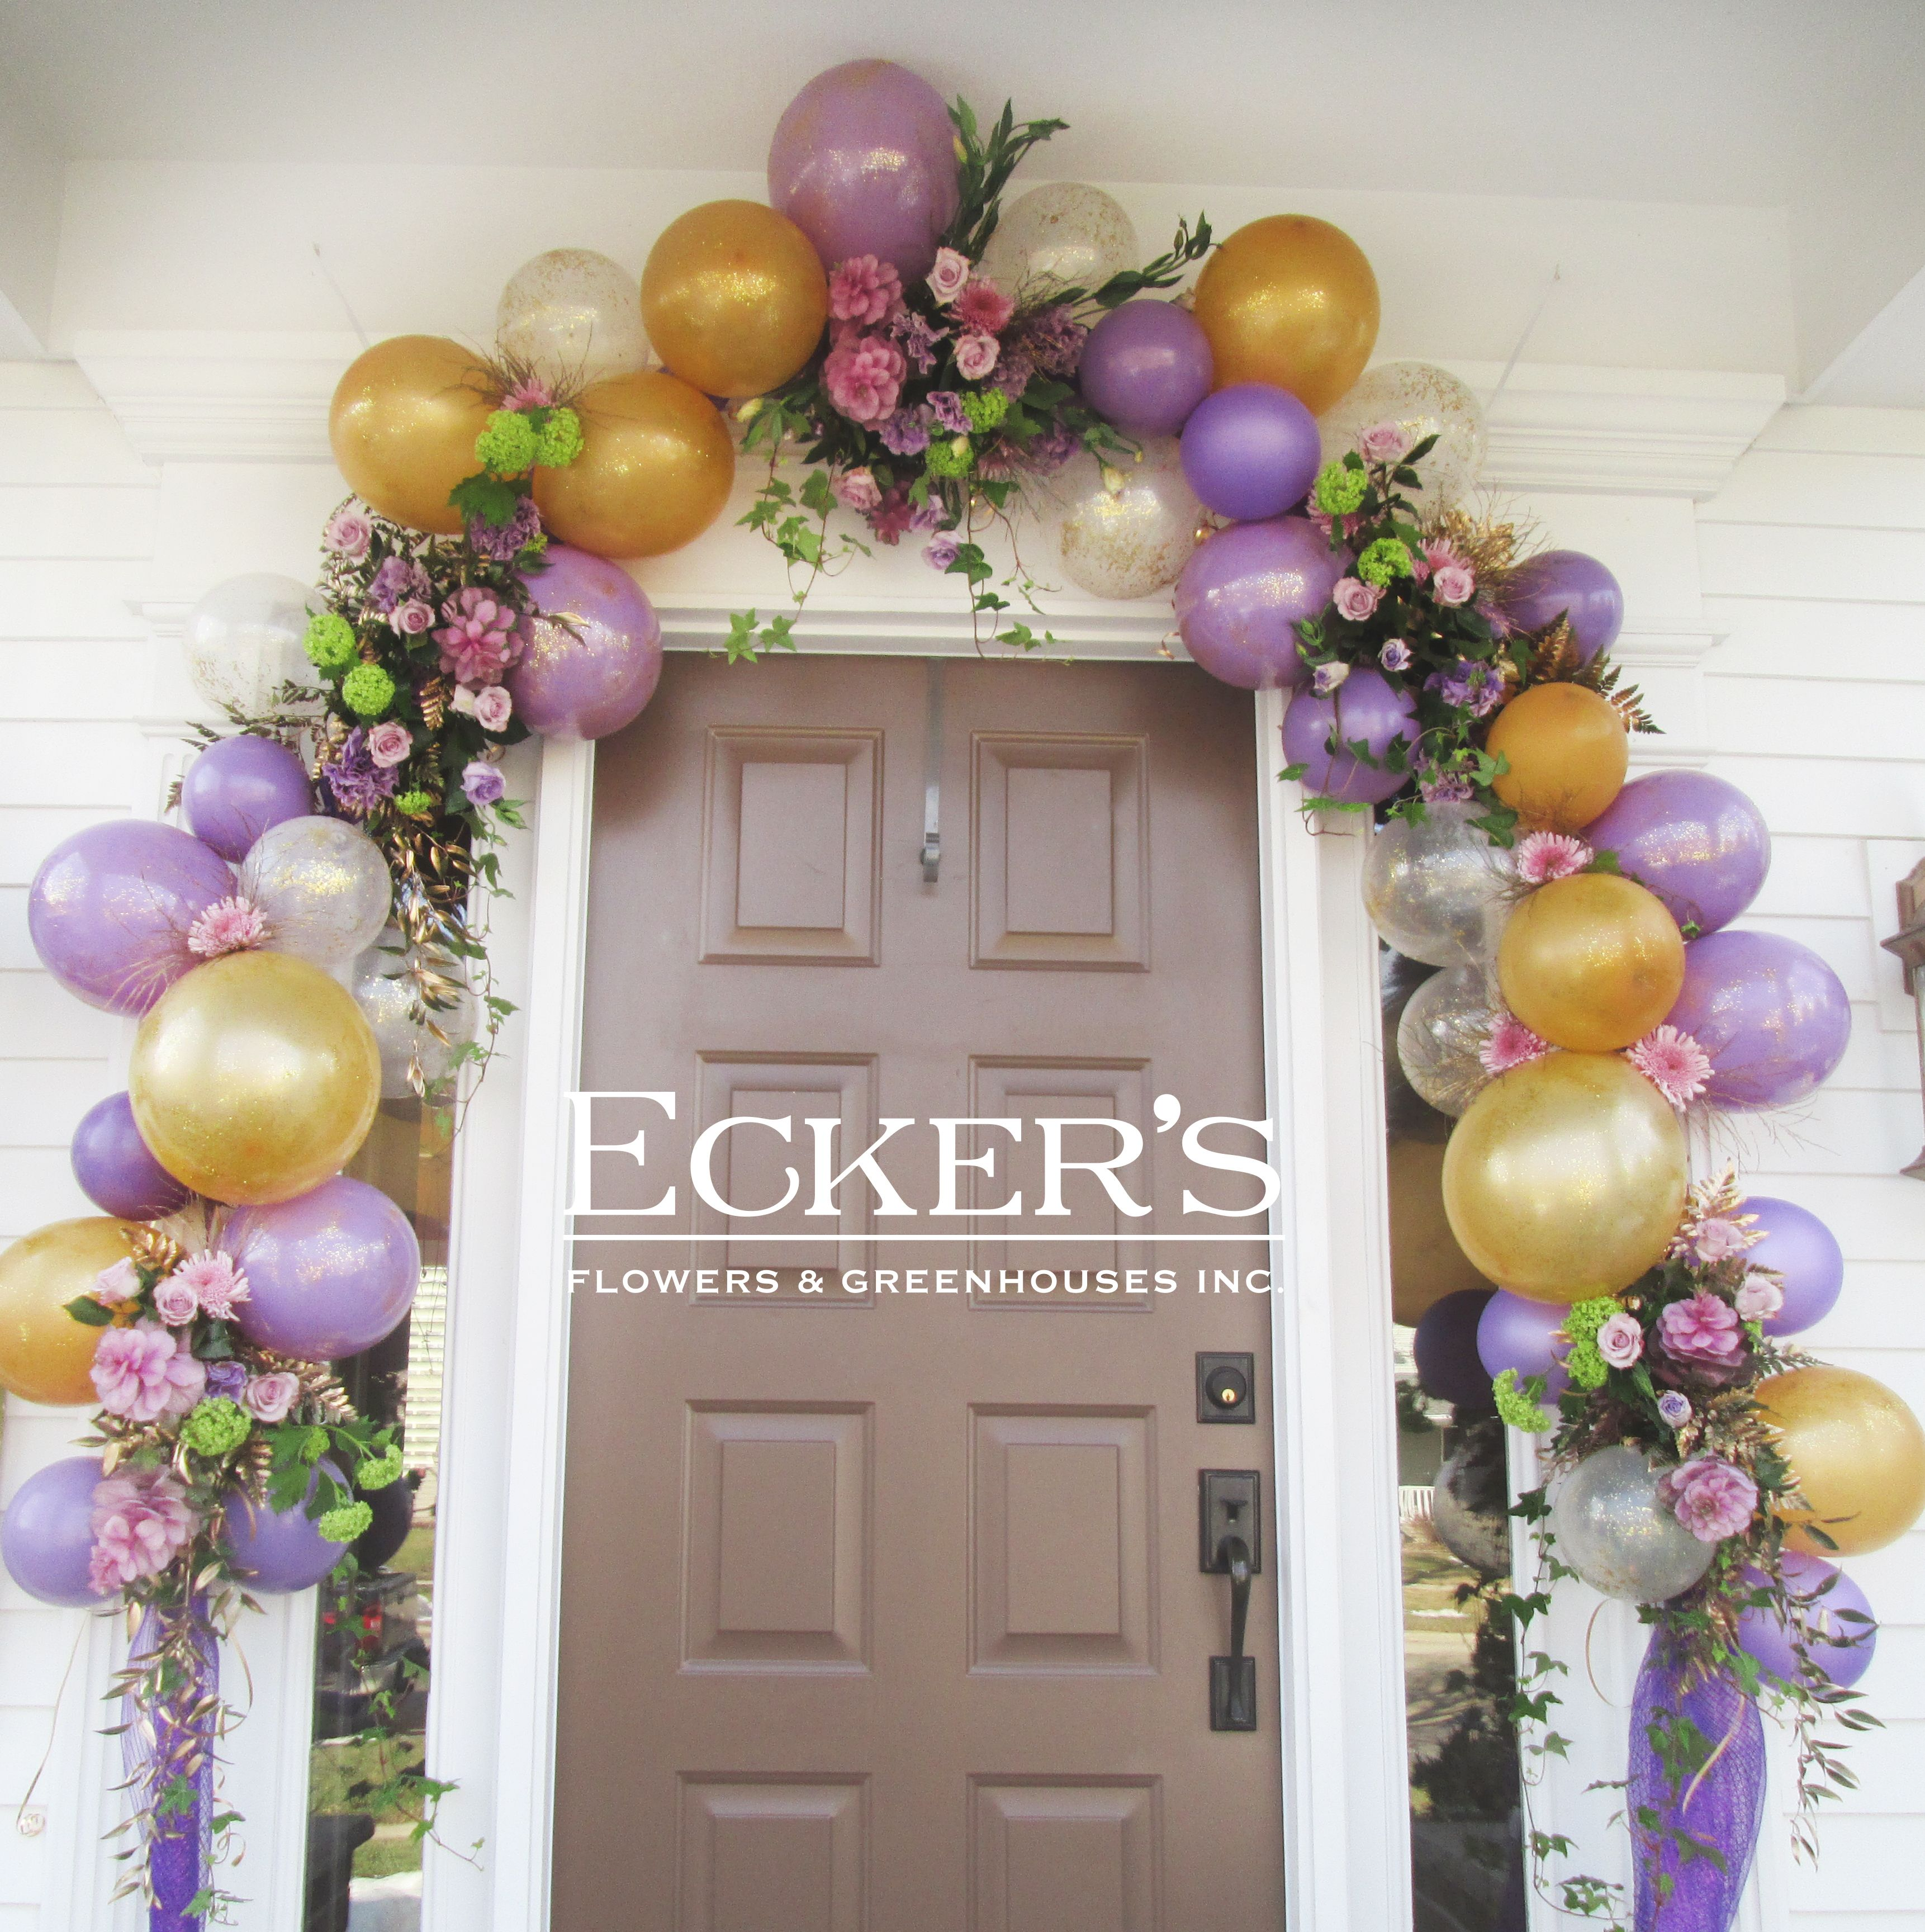 Balloon And Flower Arch By Ecker's Flowers & Greenhouses